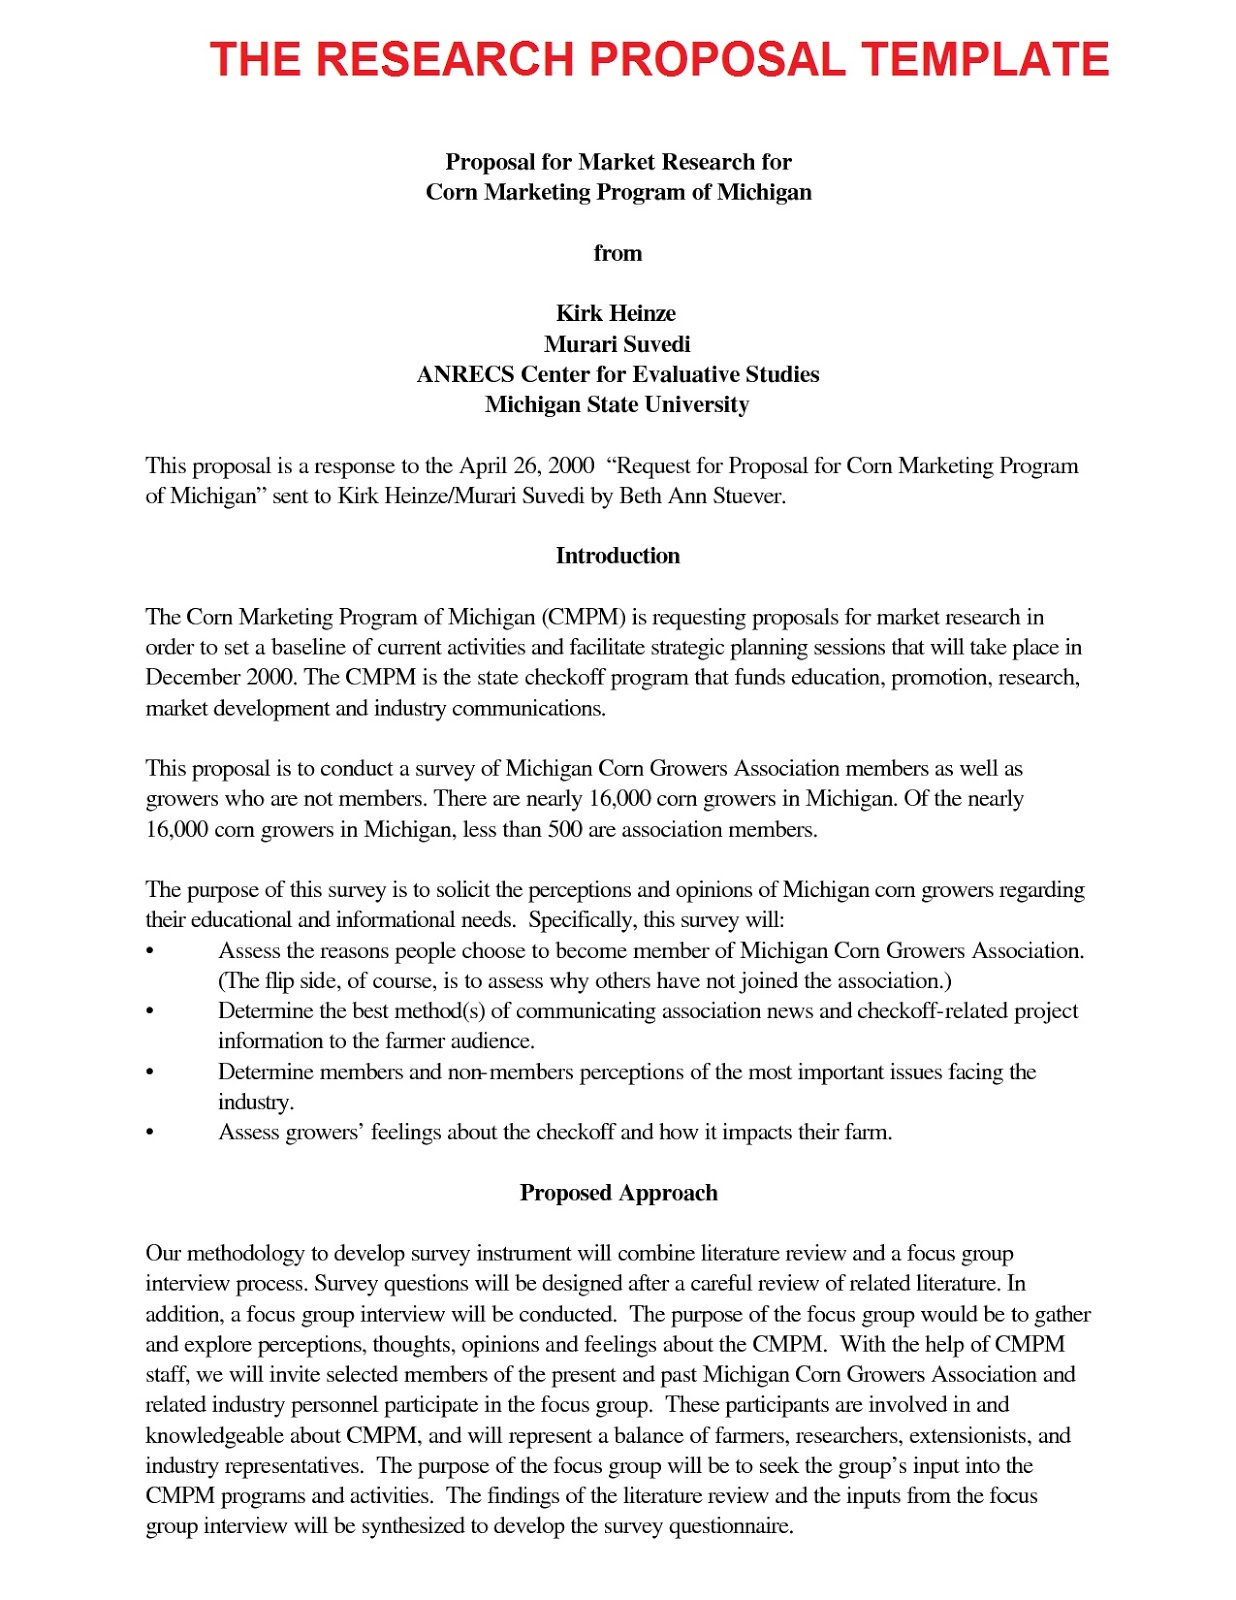 Examples of thesis proposals